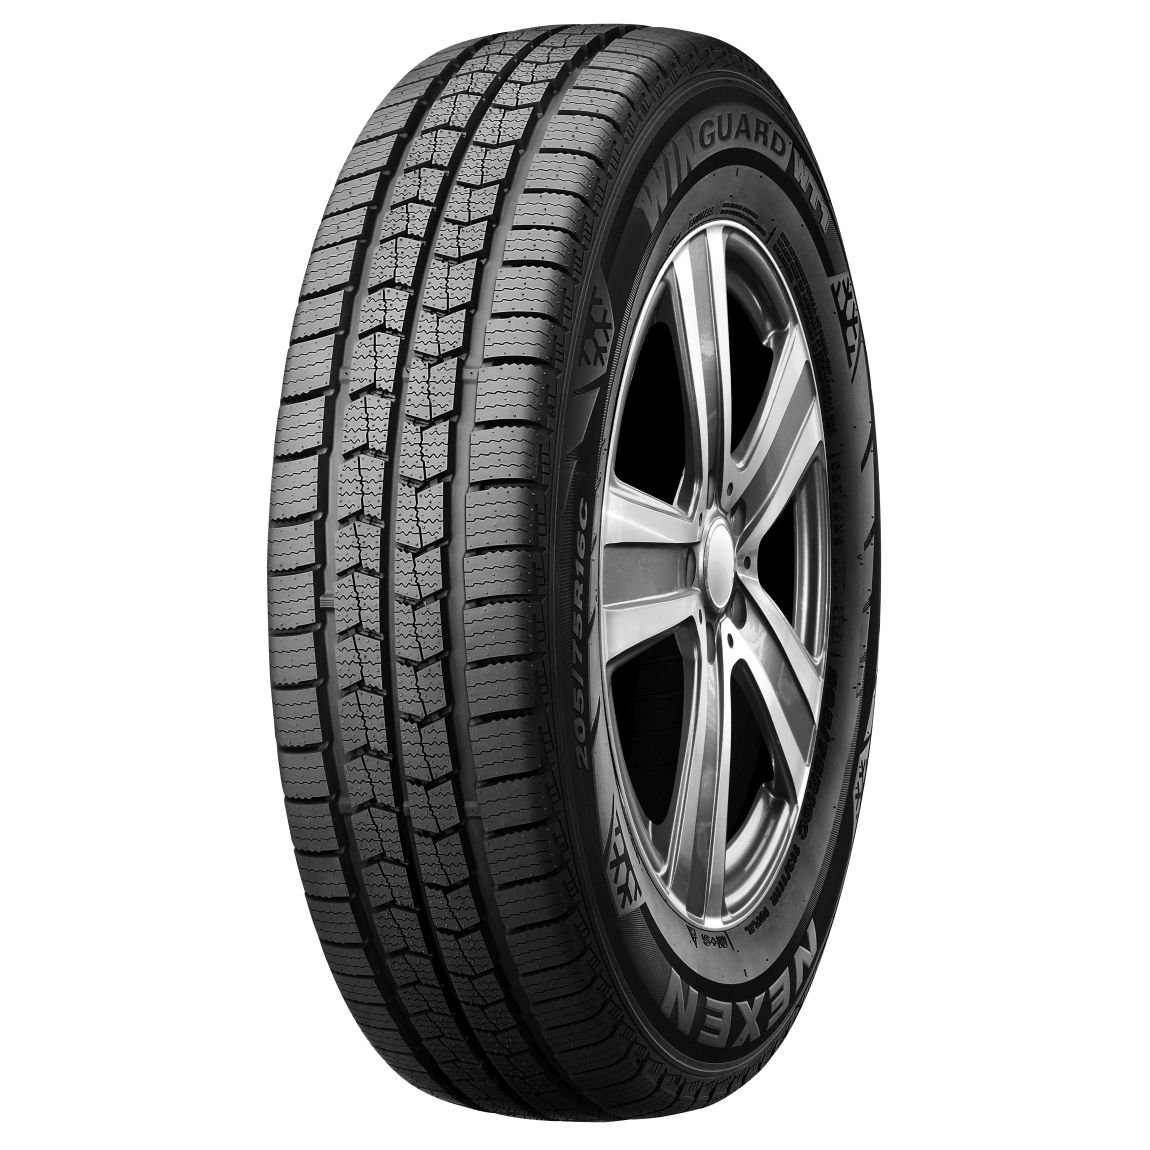 Зимняя шина Nexen WINGUARD WT1 195/75 R16 107/105R